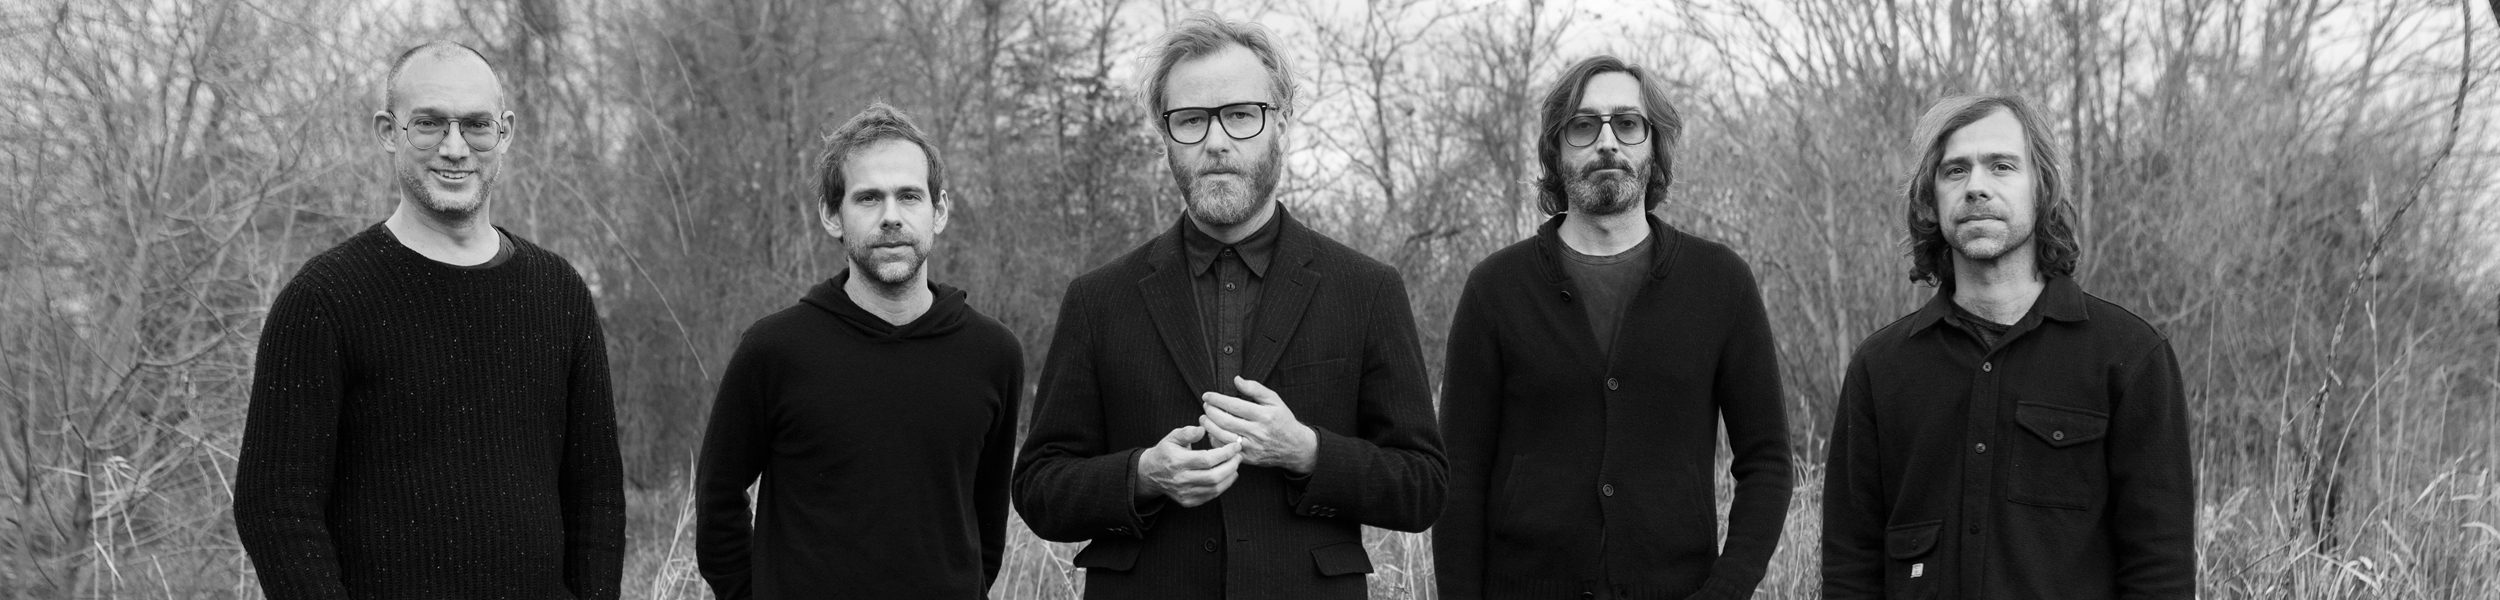 The National - BBC 6Music Festival, 'I Need My Girl' Contest, North American Tour